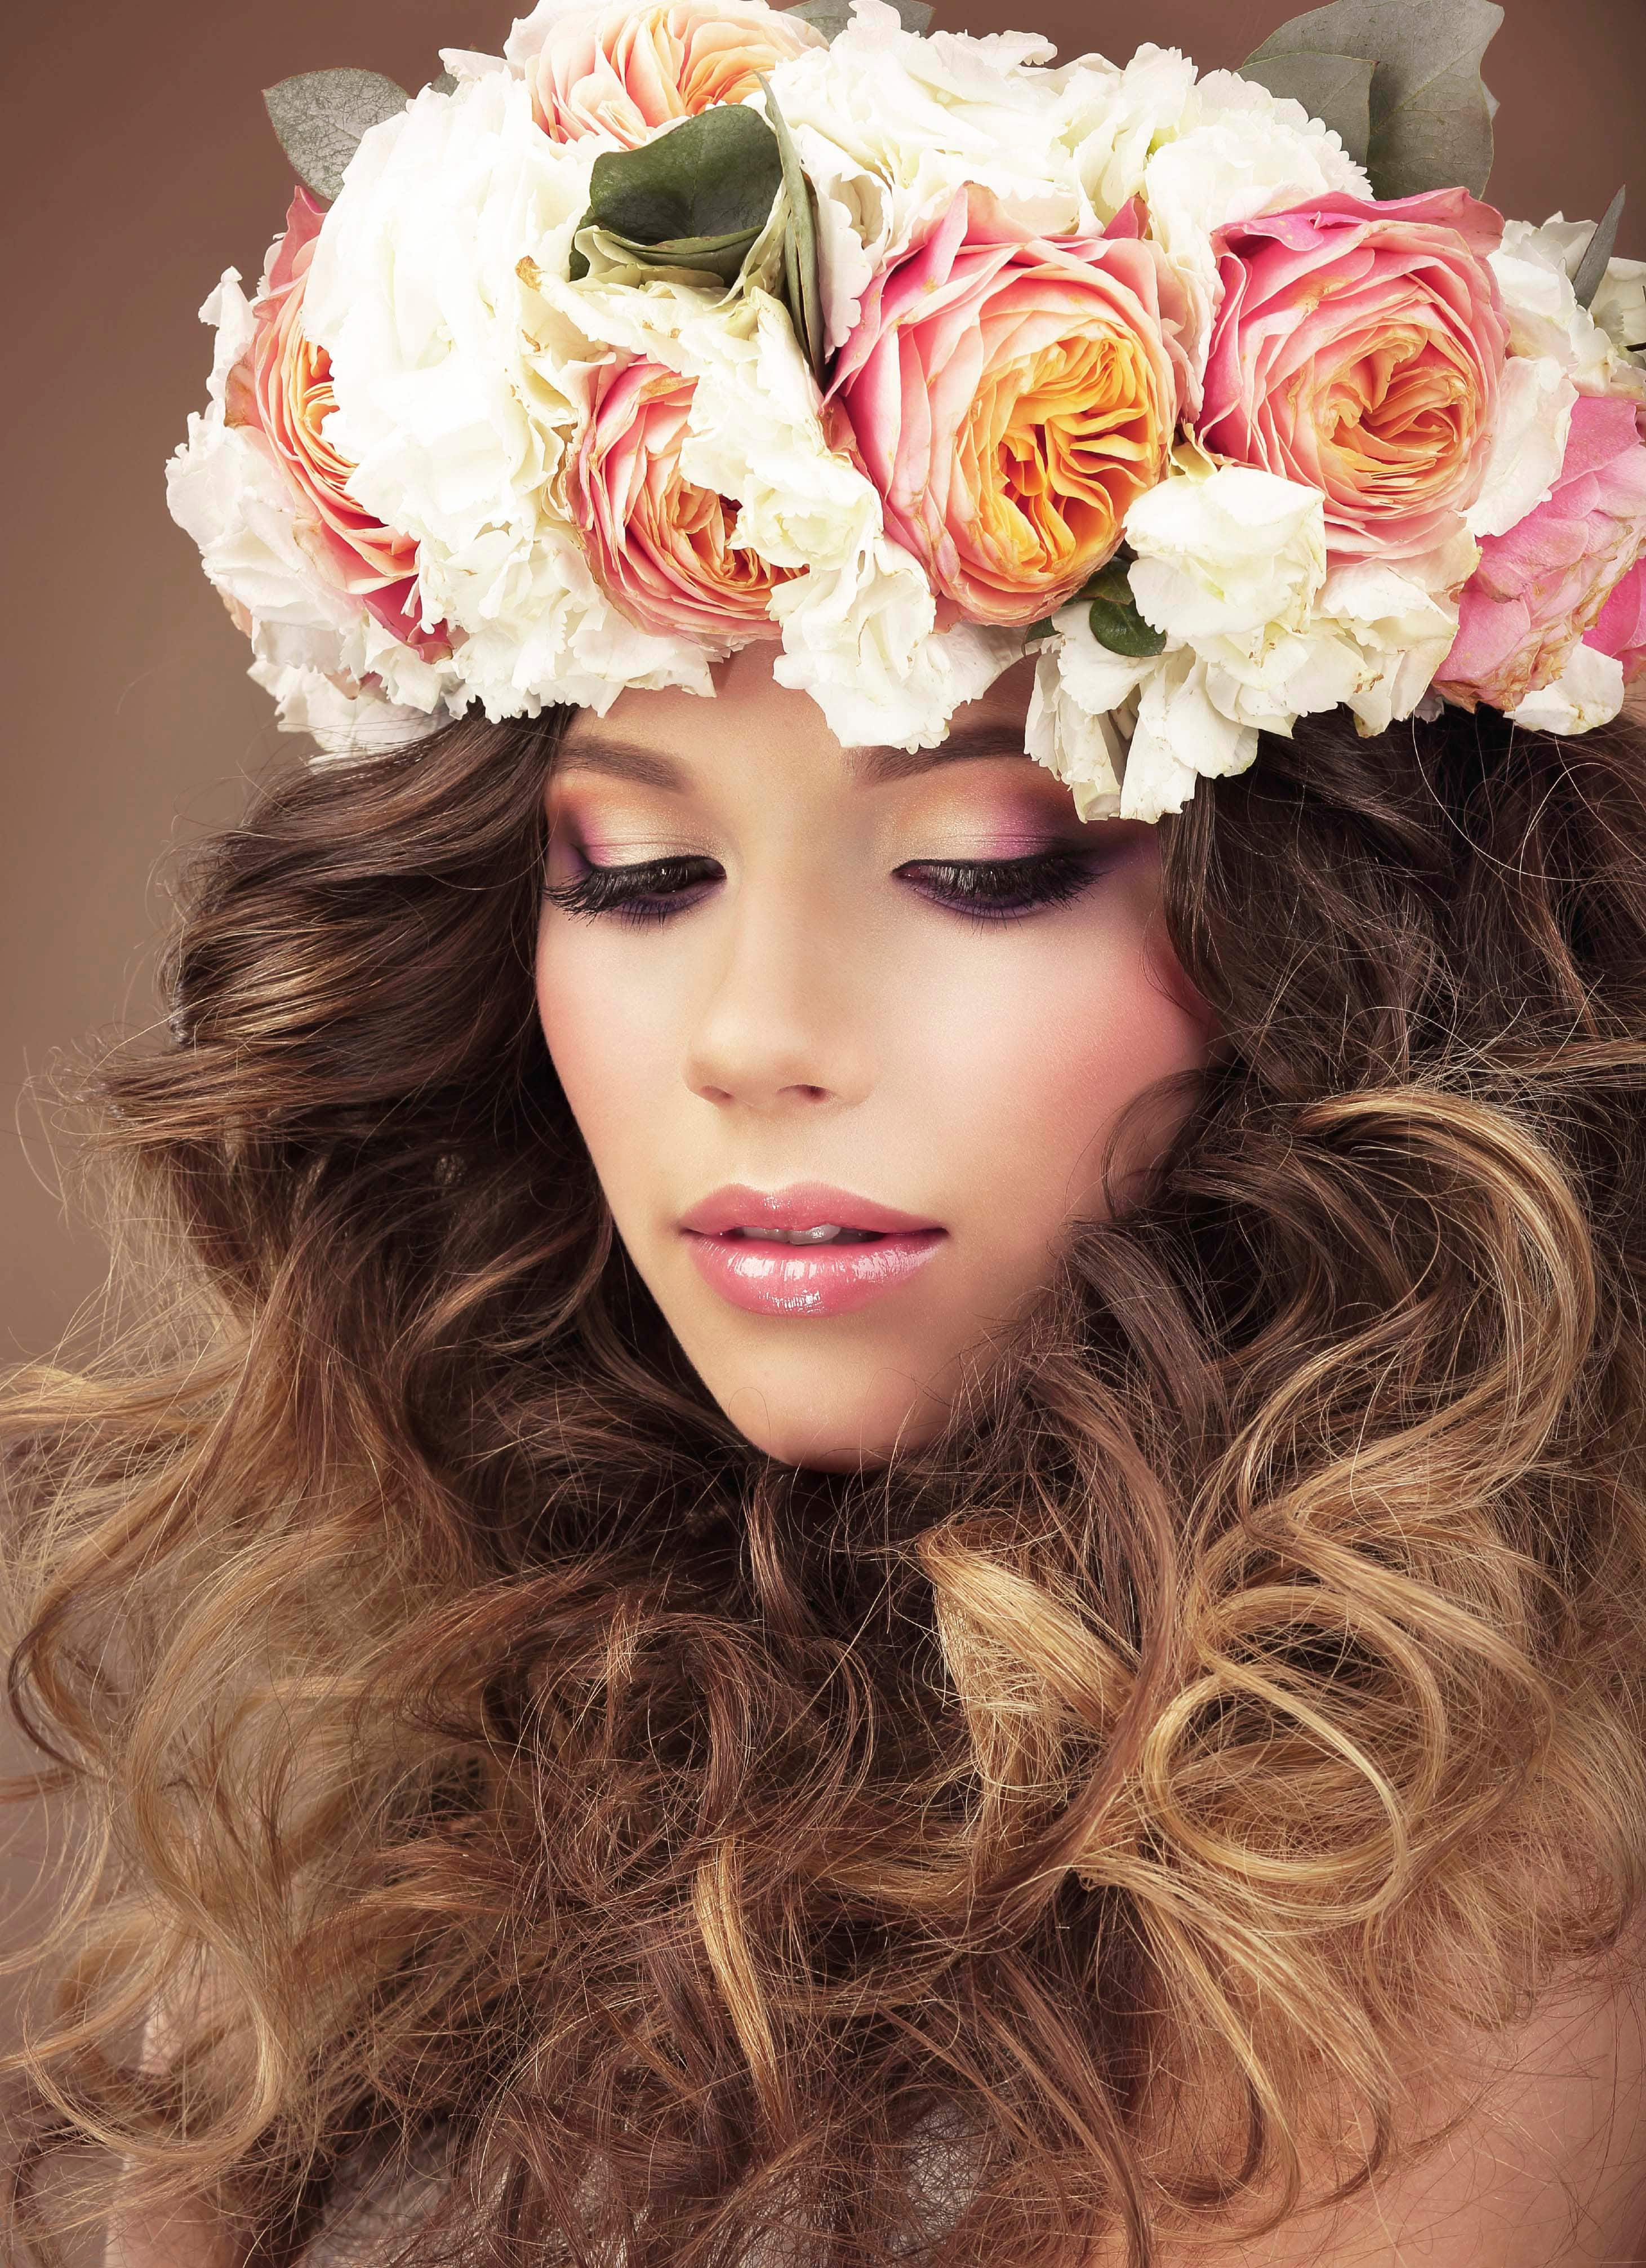 Bridal hairstyles and hair ideas to inspire your look on your wedding bridal hairstyles with a flower crown izmirmasajfo